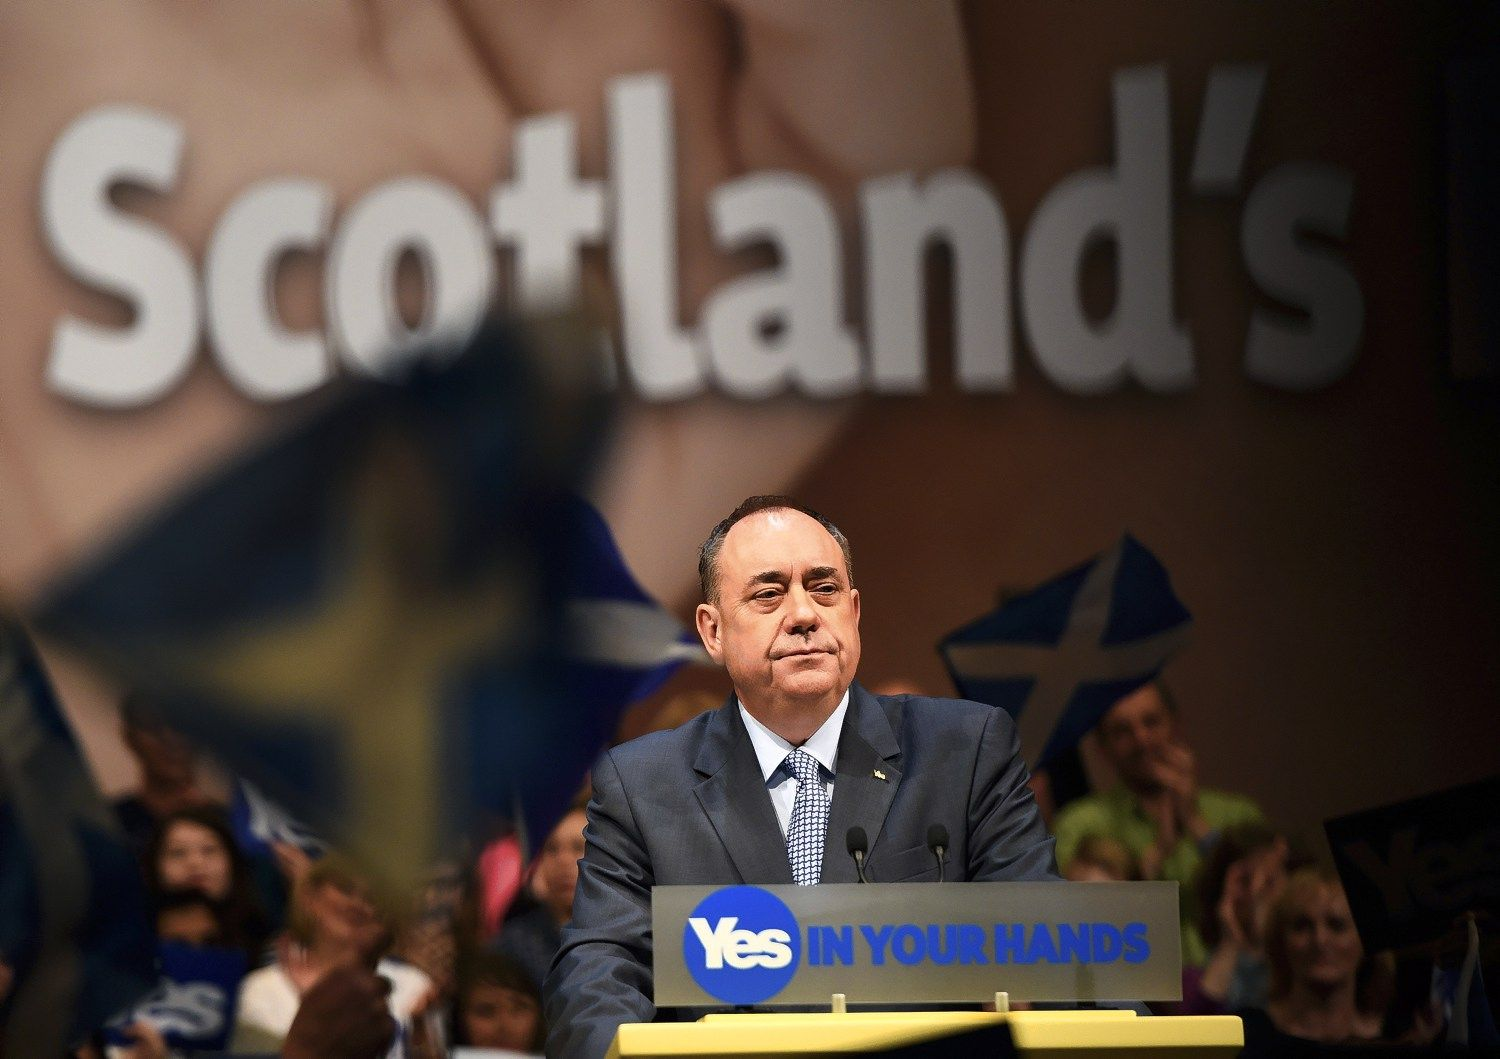 Scots Could Join European Market Via Nordic Model, Salmond Says